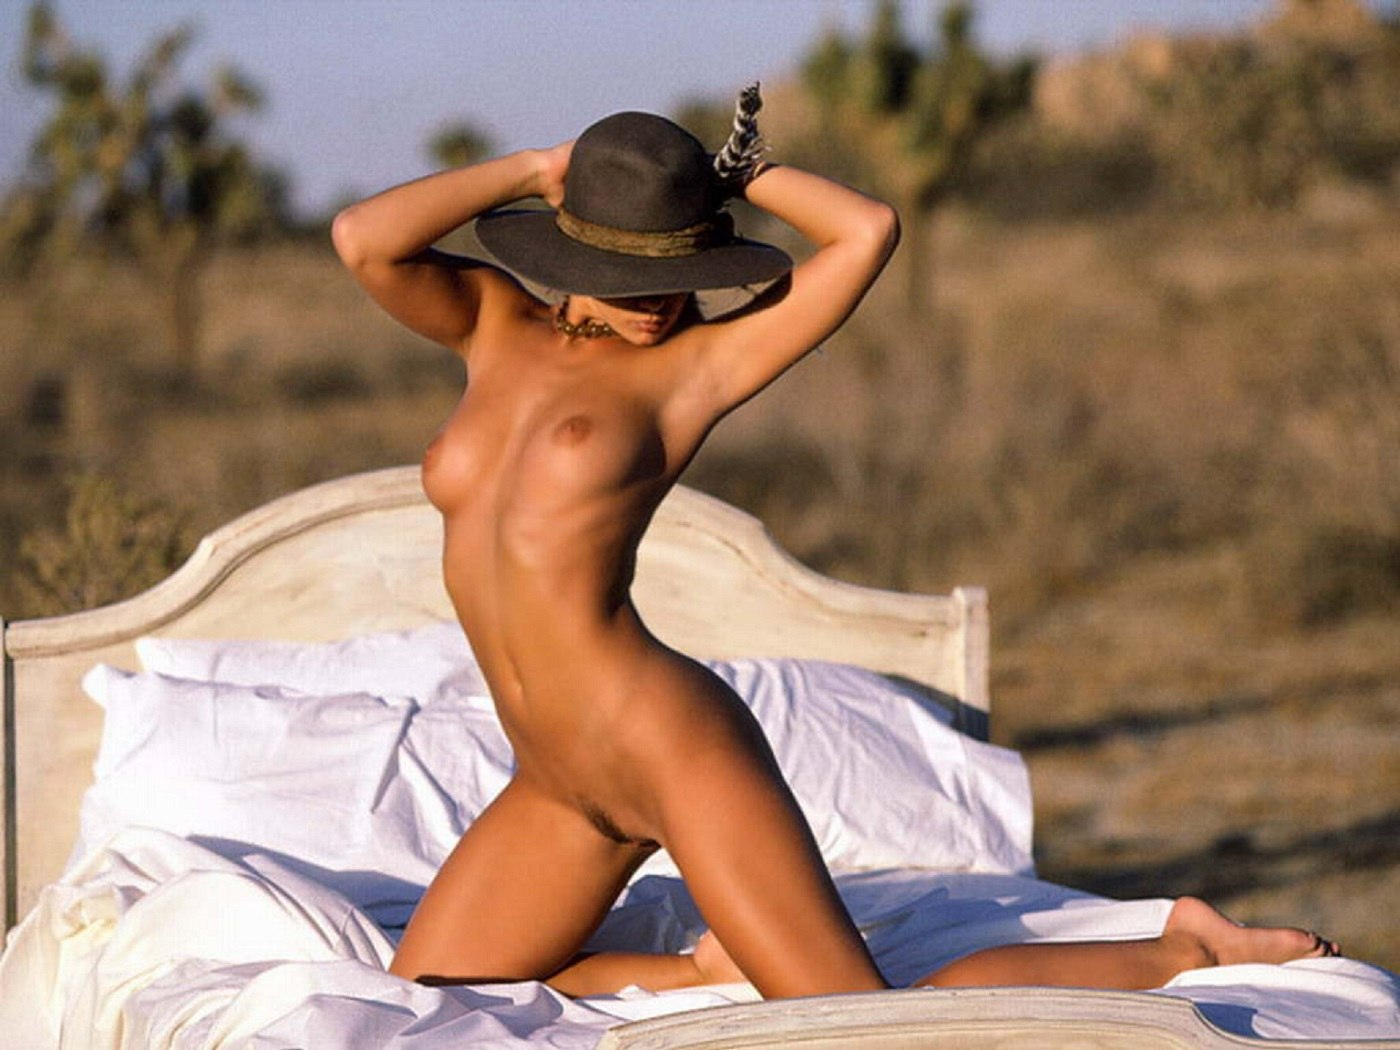 Jaime Pressly Nude In Playboy